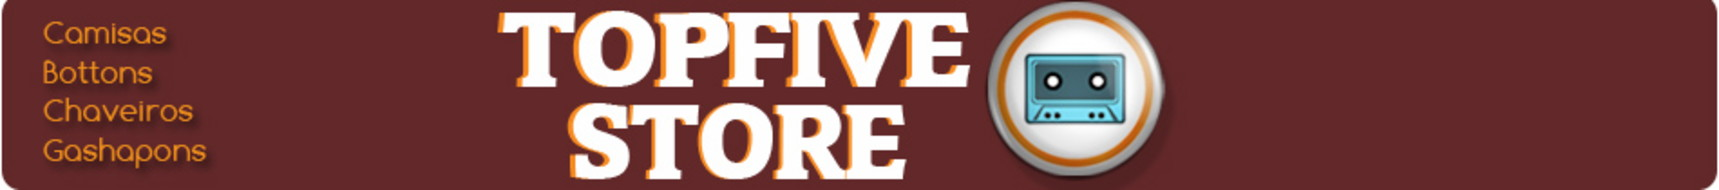 Topfive Store